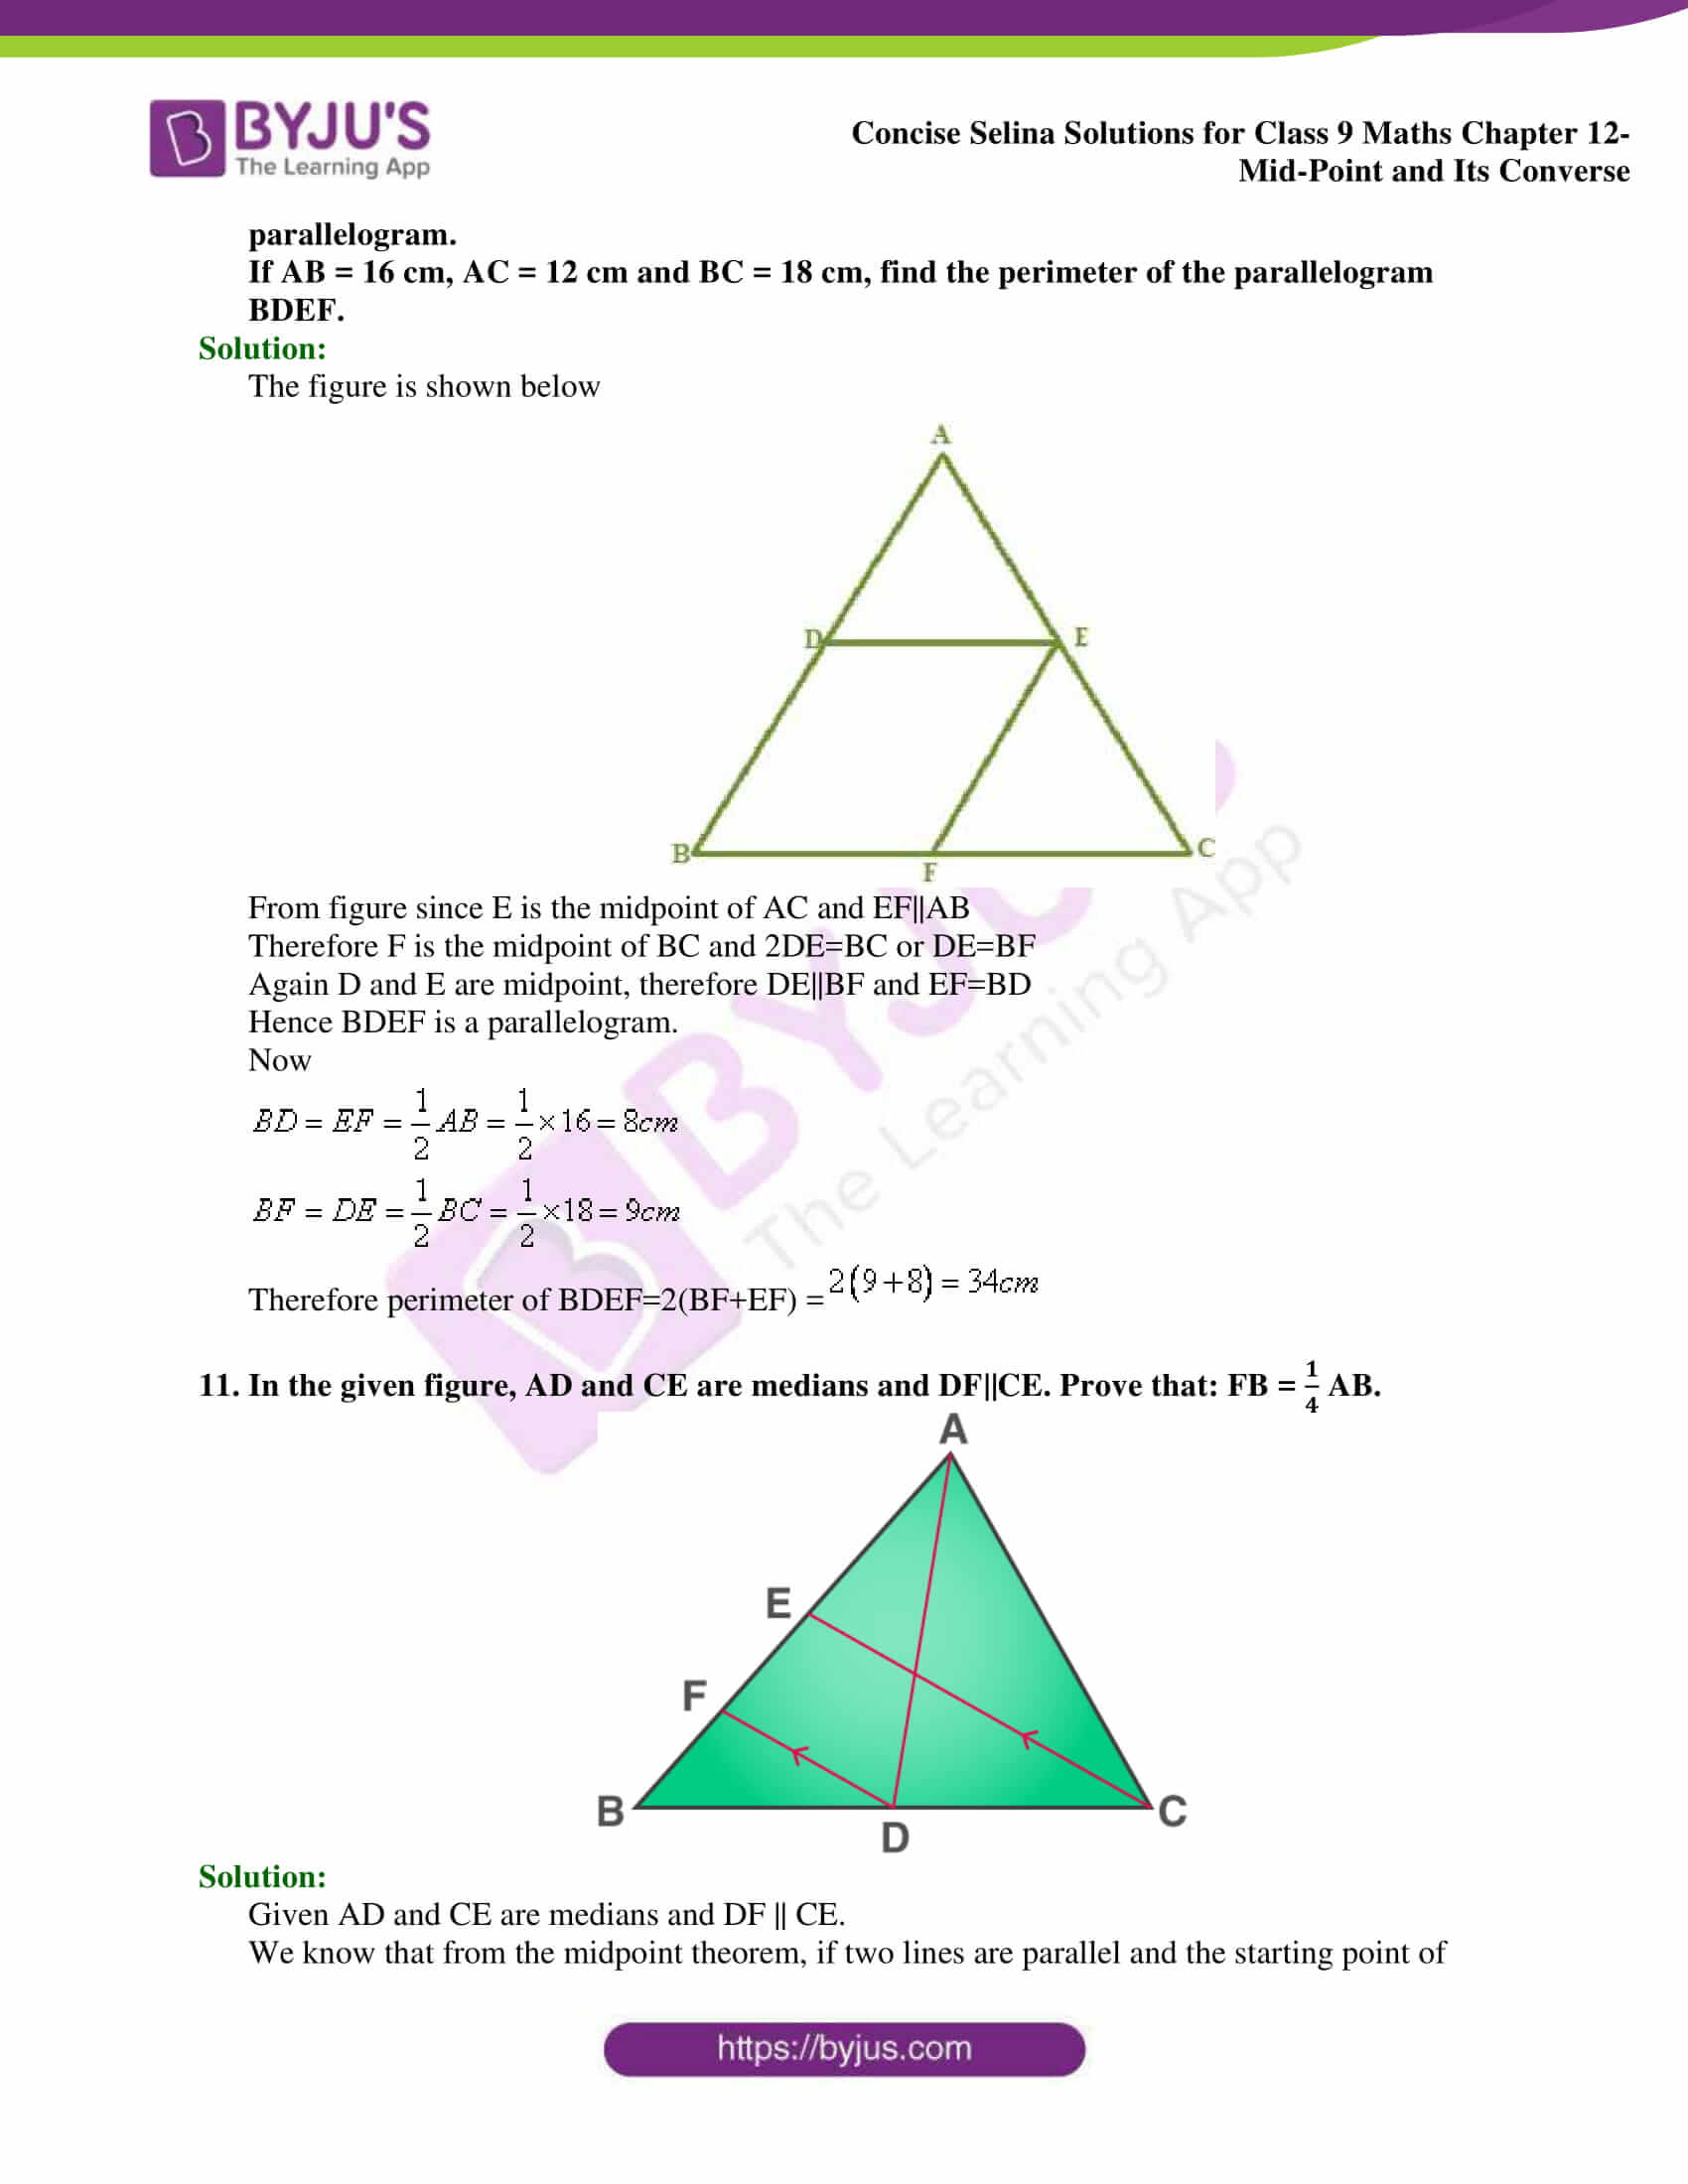 selina Solutions for Class 9 Maths Chapter 12 part 19